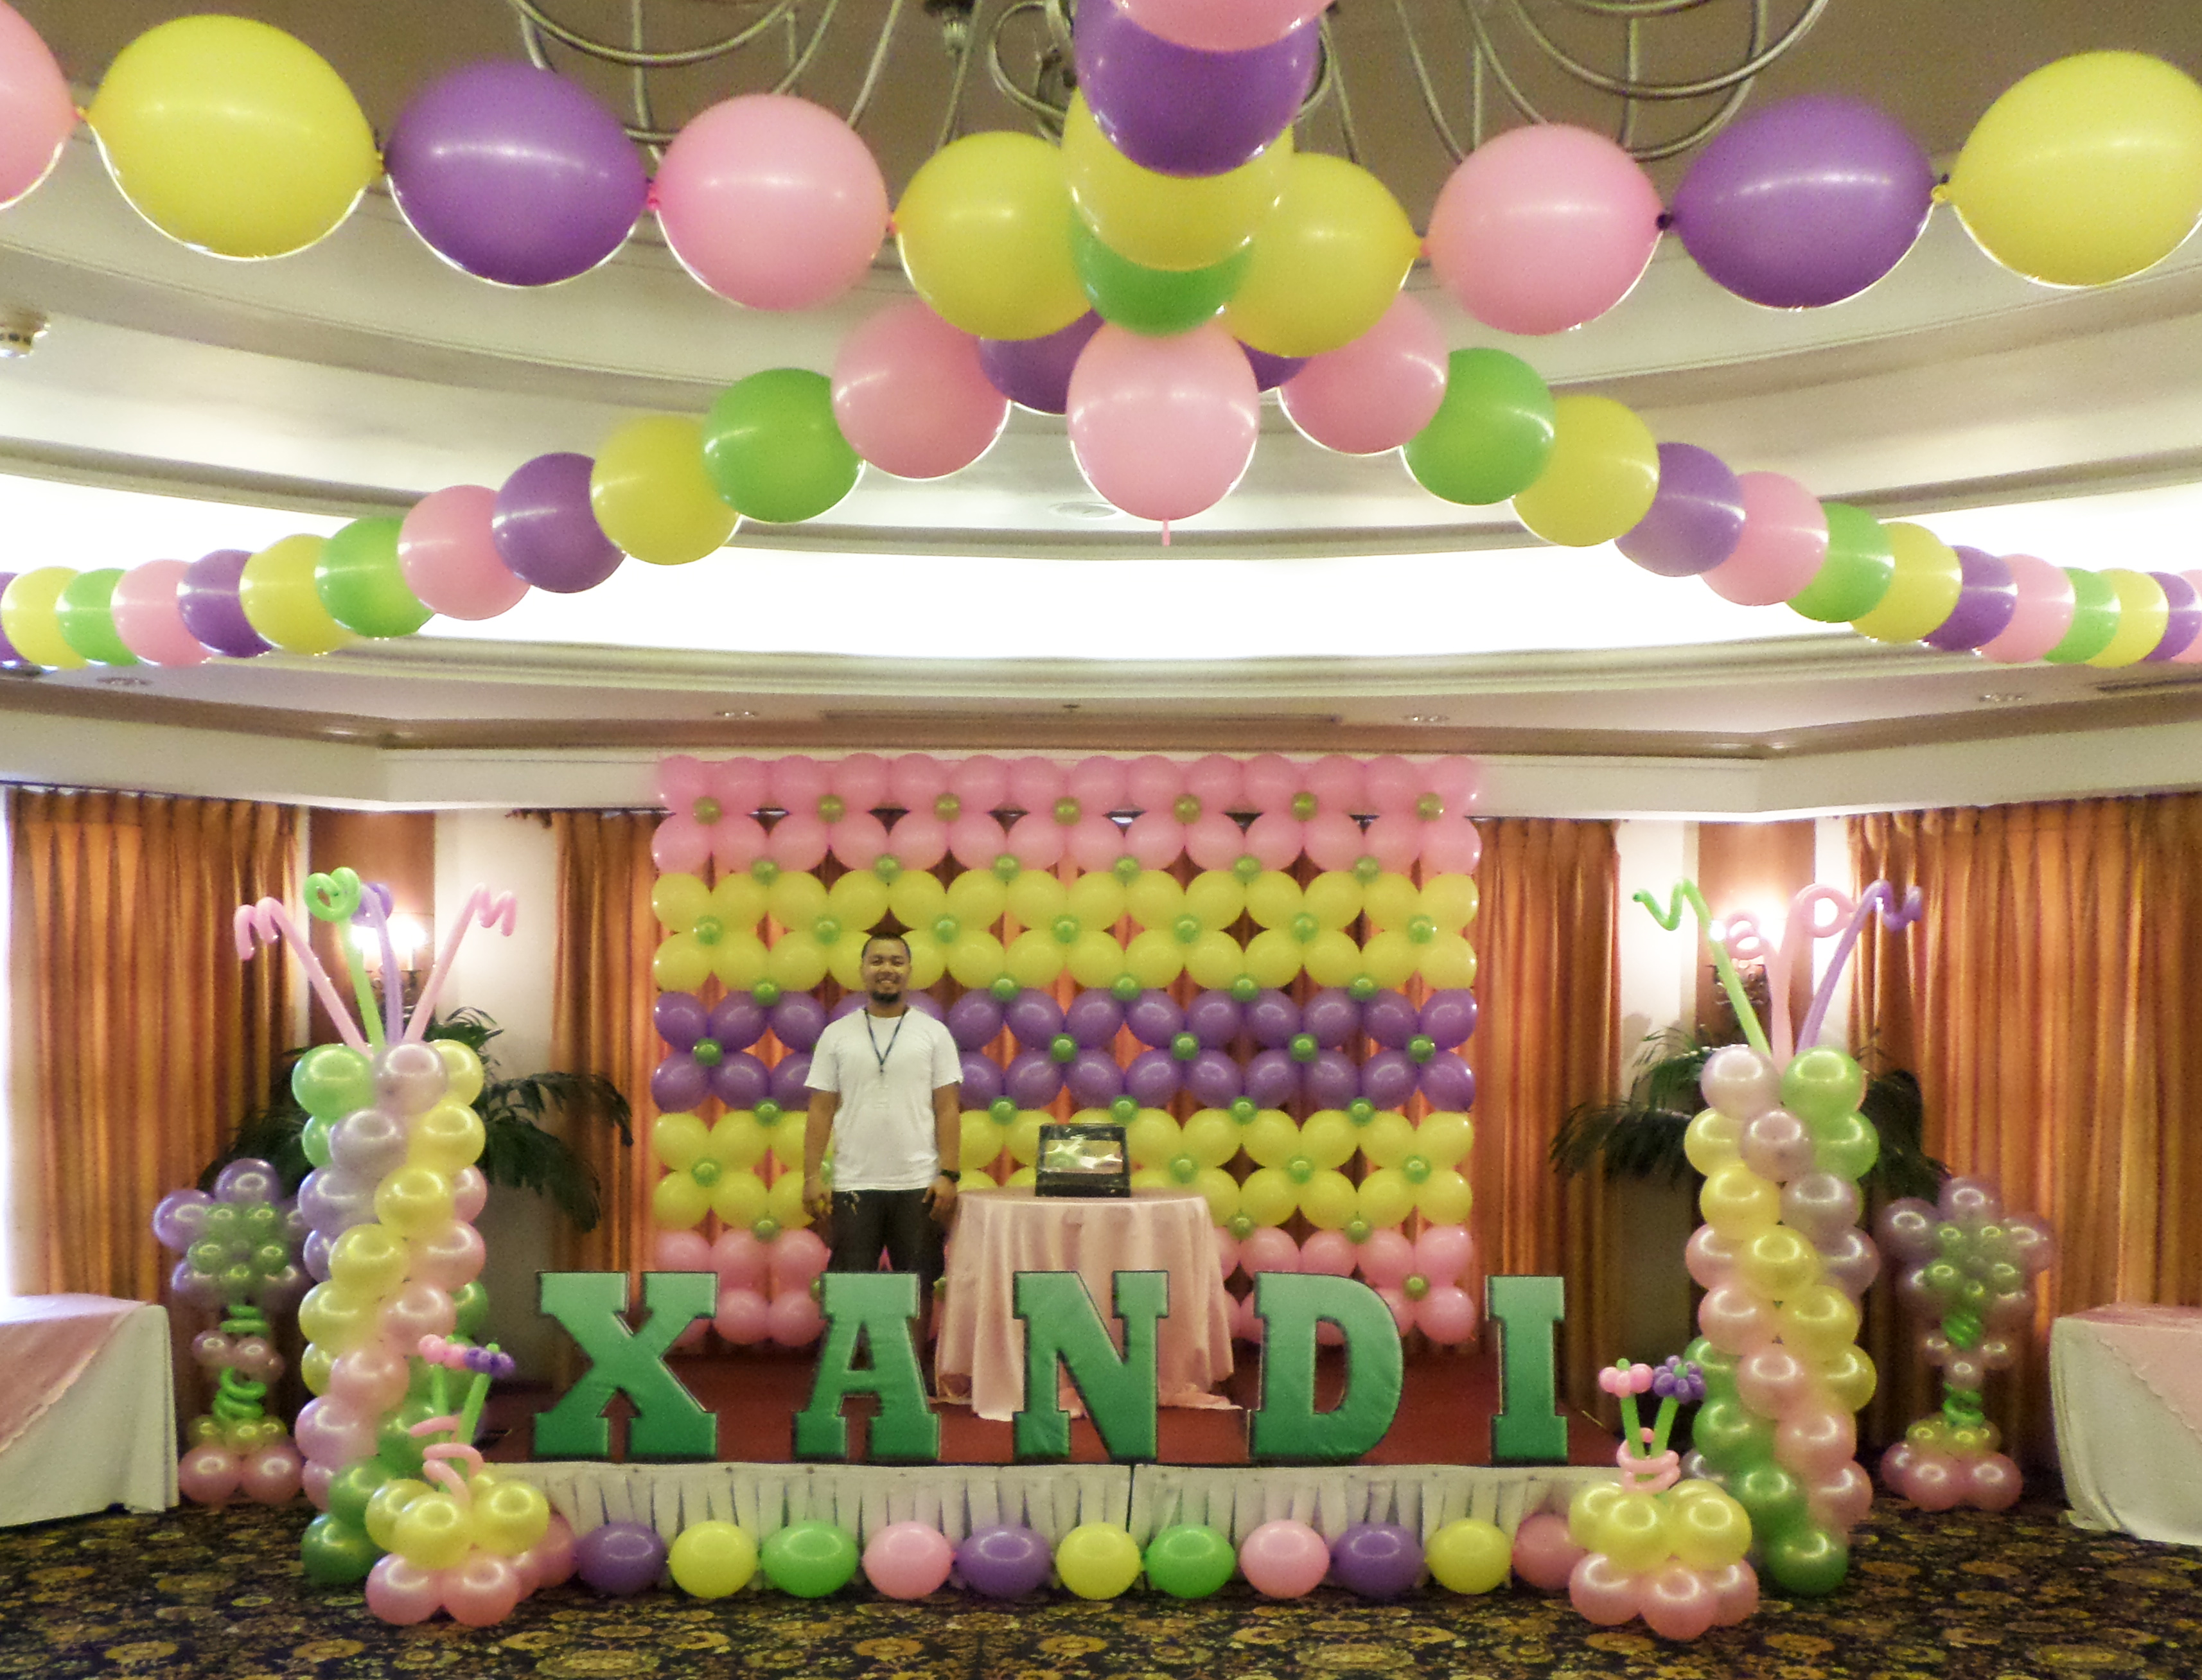 Wall Decoration Ideas With Balloons : Balloon wall prices conversion cebu balloons and party